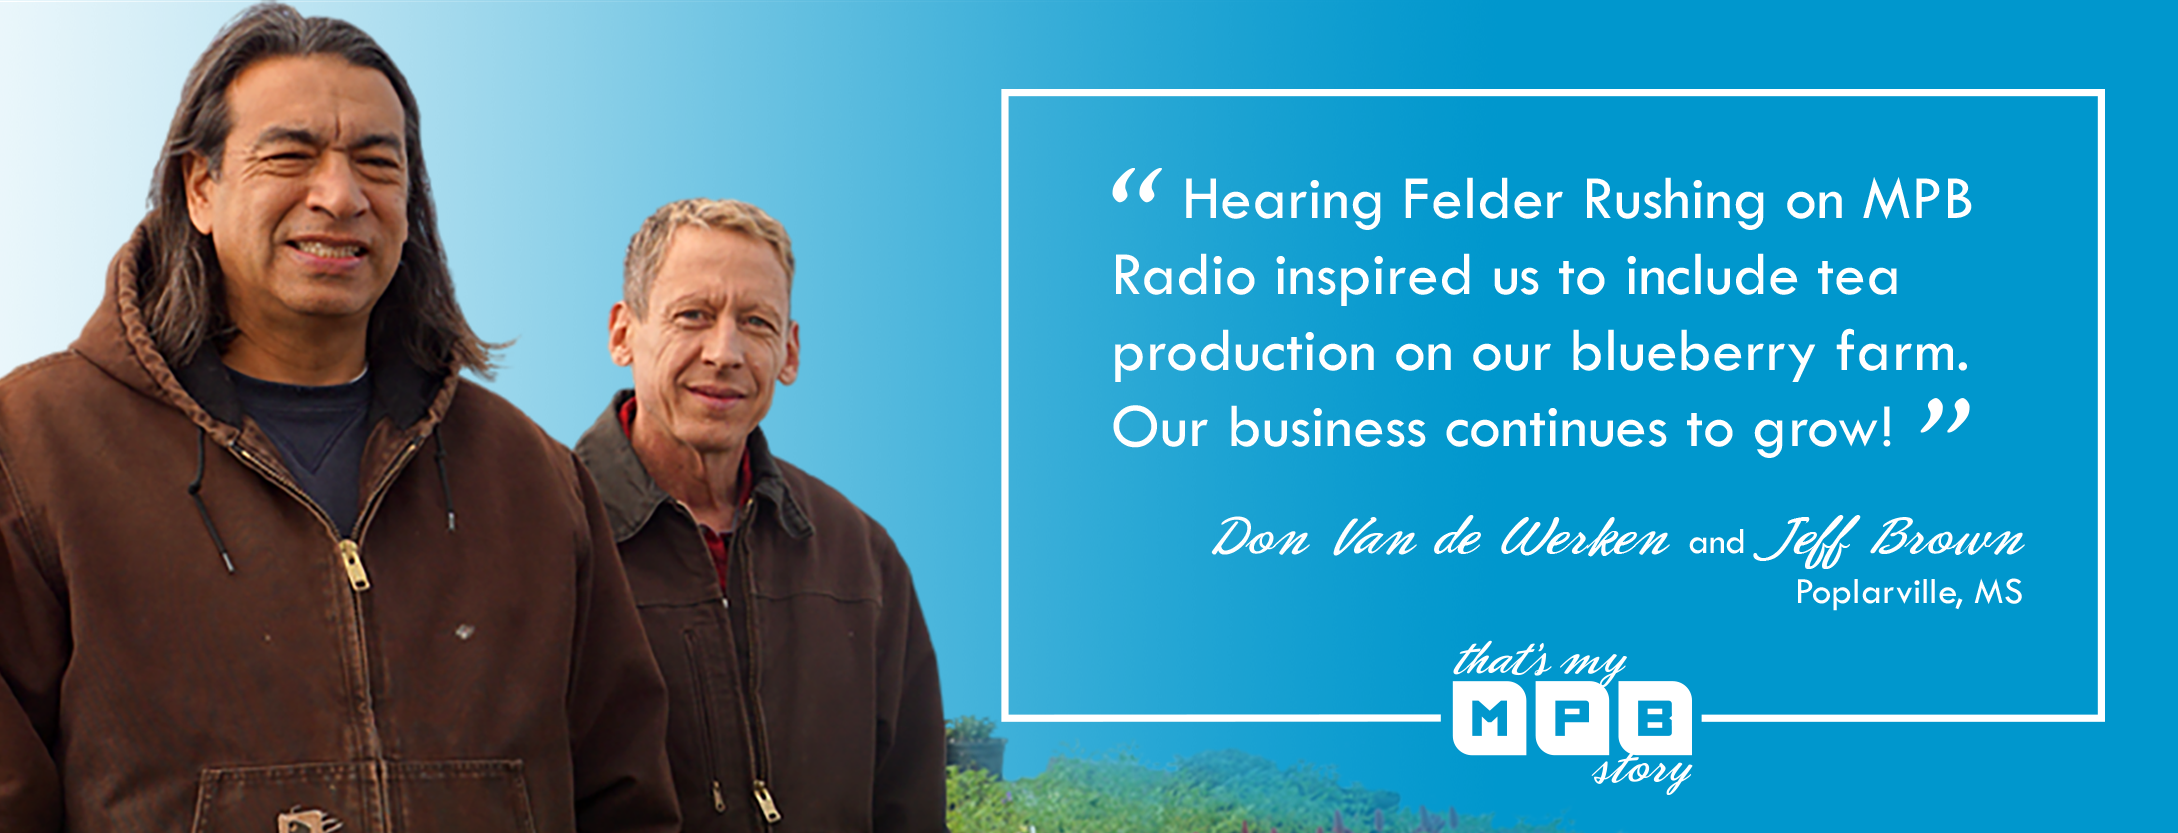 """Hearing Felder Rushing on MPB Radio inspired us to include tea production on our blueberry farm. Our business continues to grow!"" - Don Van de Werken and Jeff Brown, Poplarville, MS"